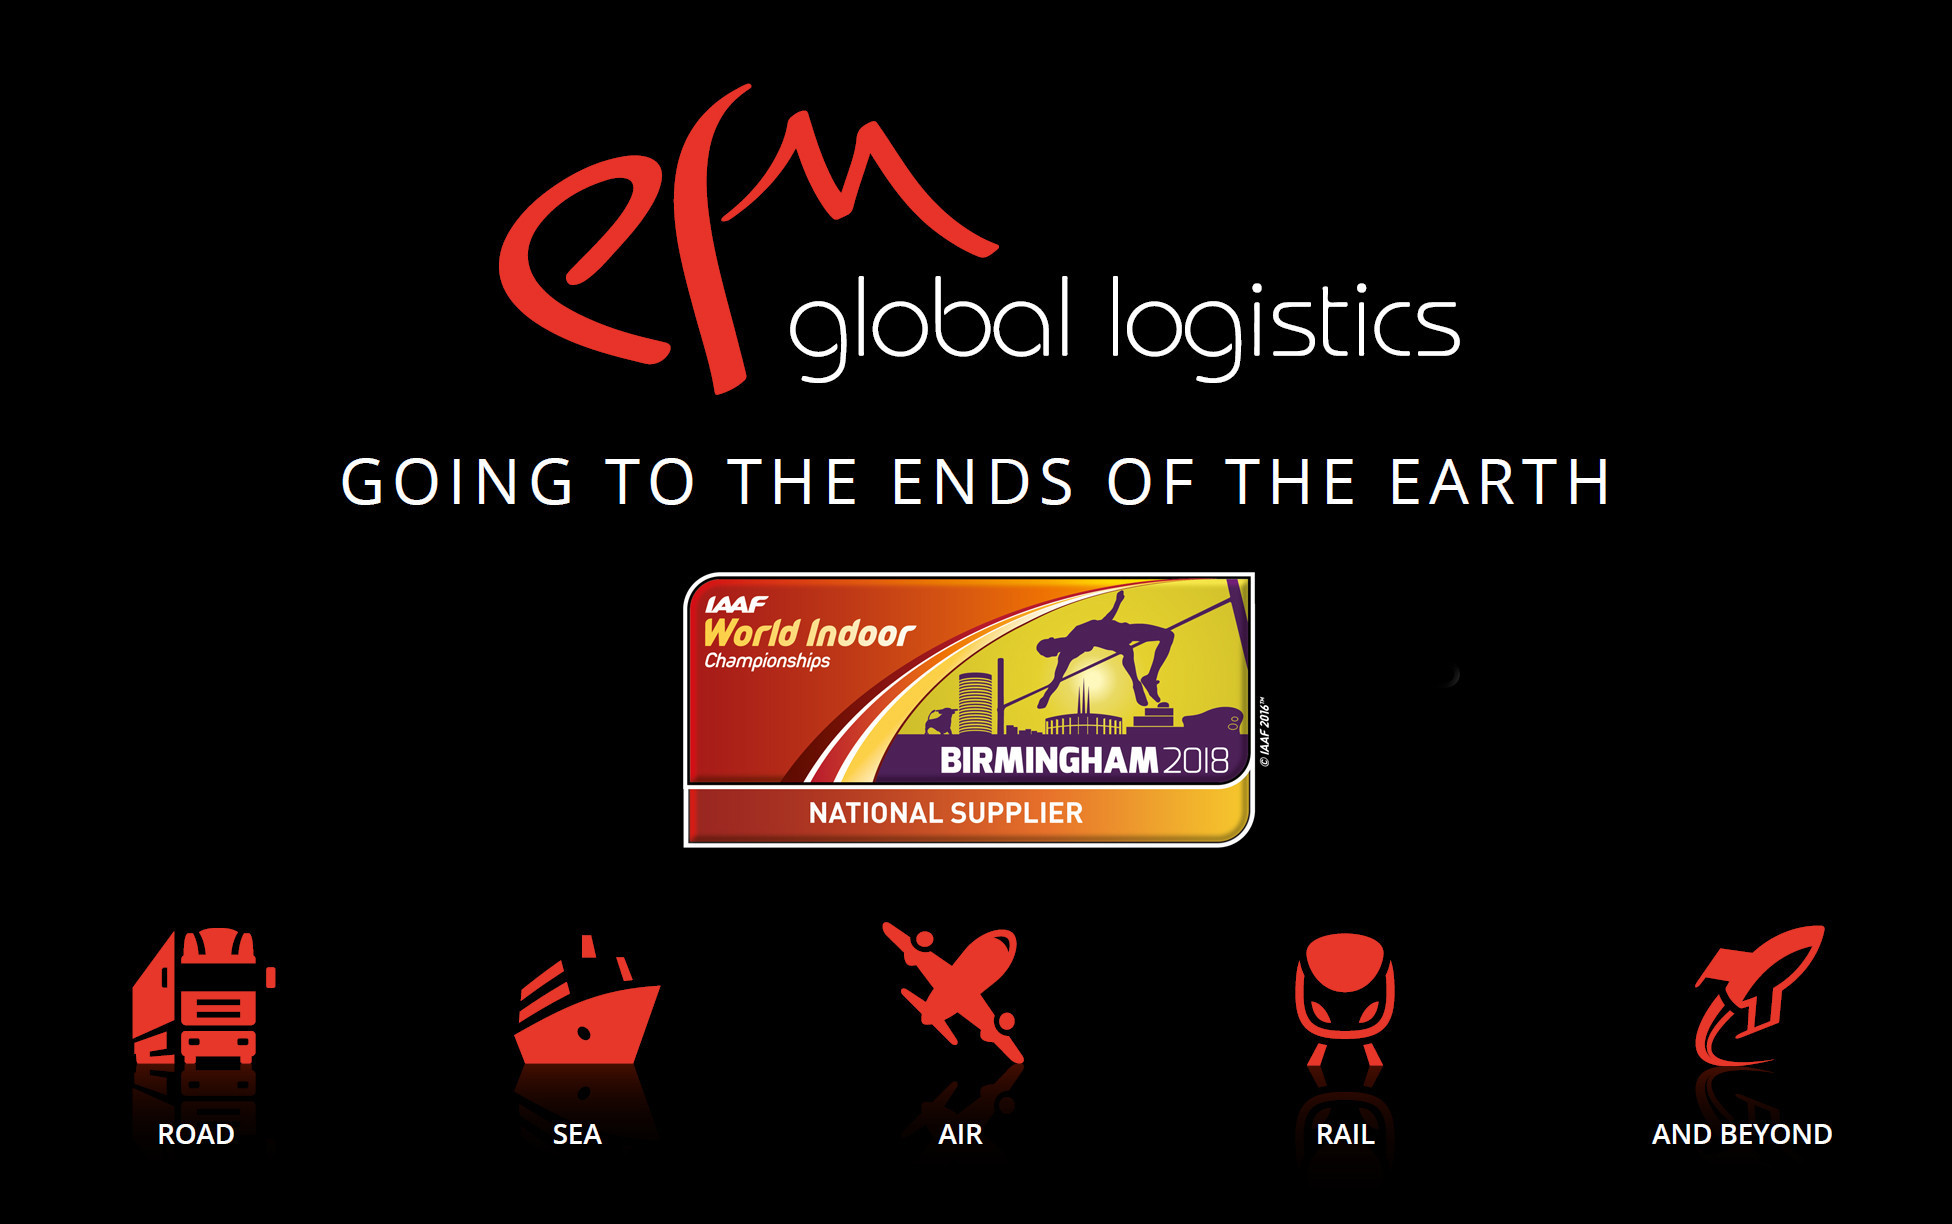 EFM Global Logistics unveiled as national supplier for 2018 IAAF World Indoor Championships in Birmingham